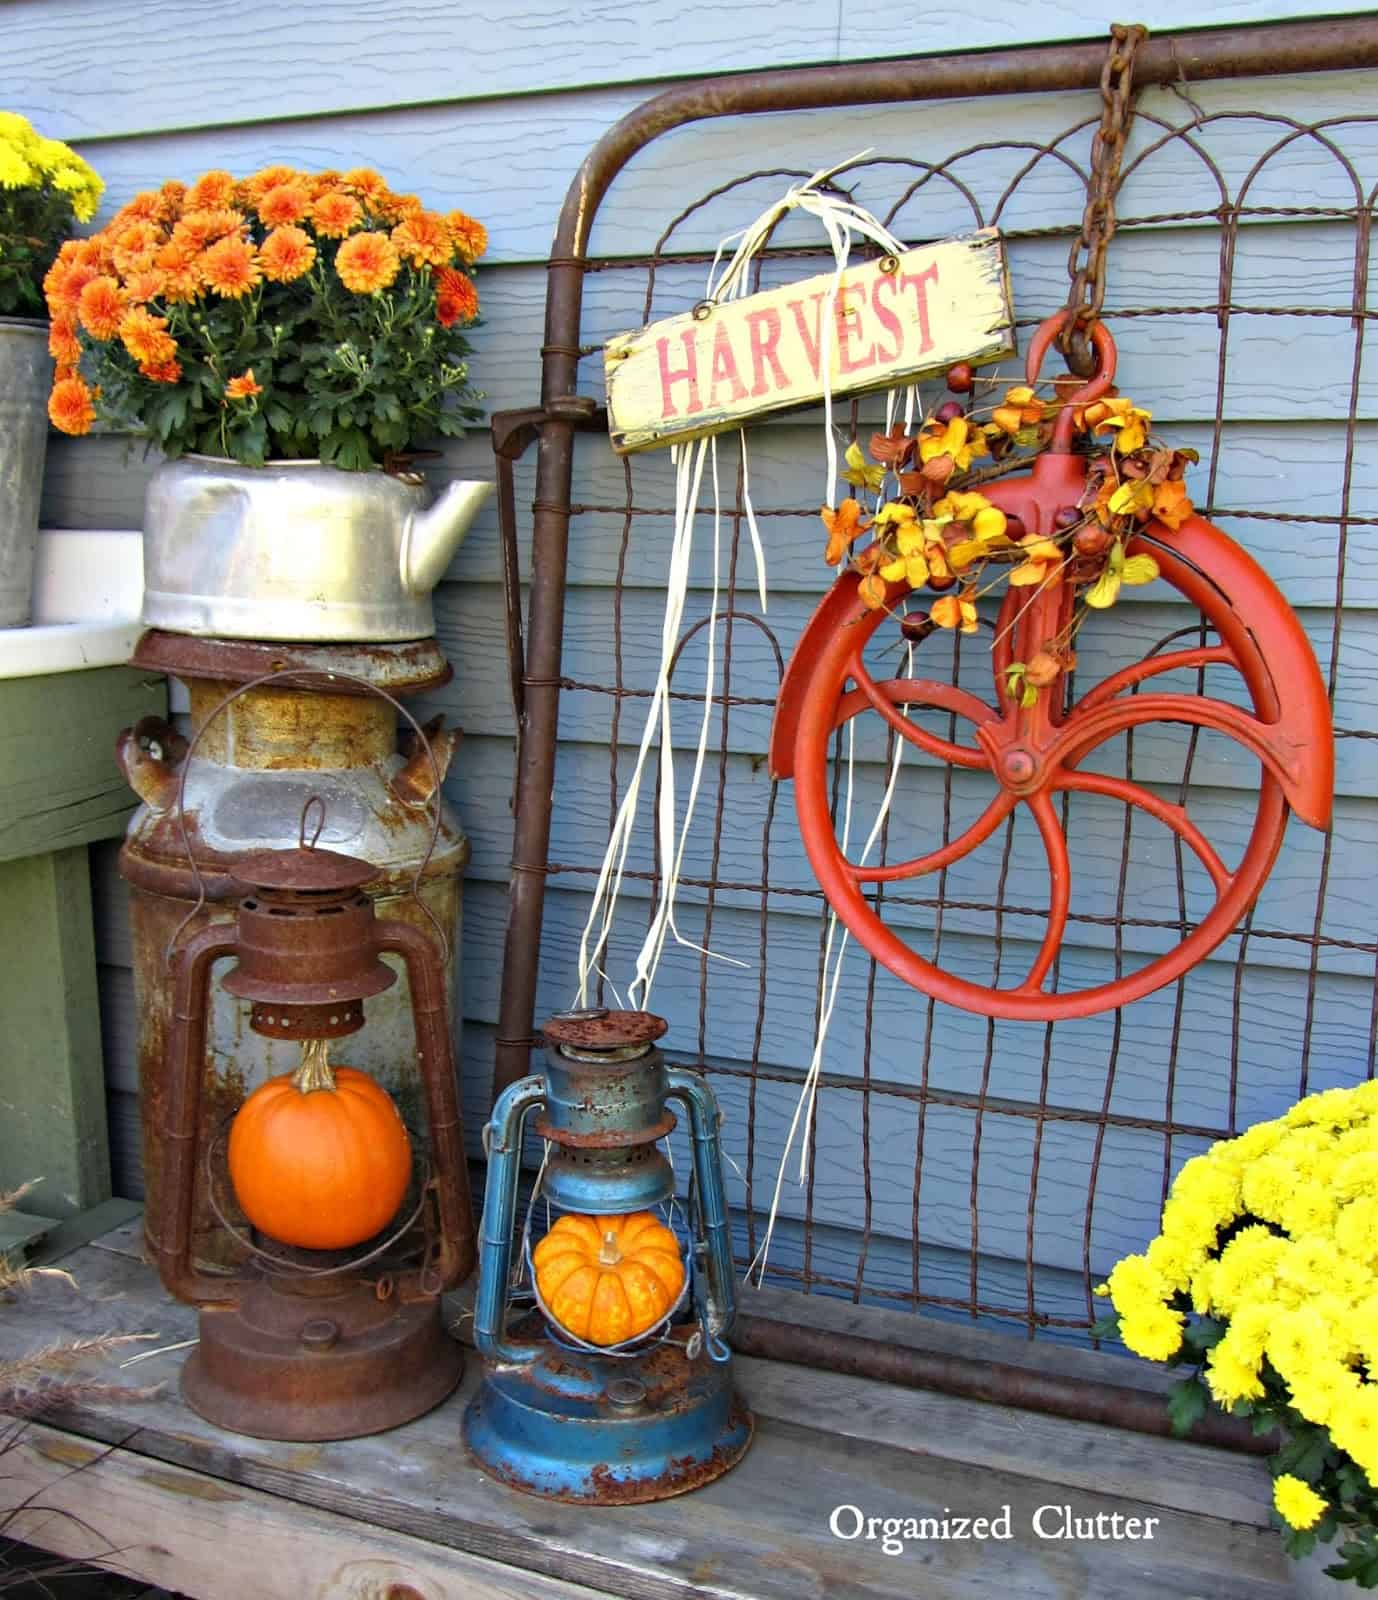 Vintage farmwares as planters and pumpkin stands